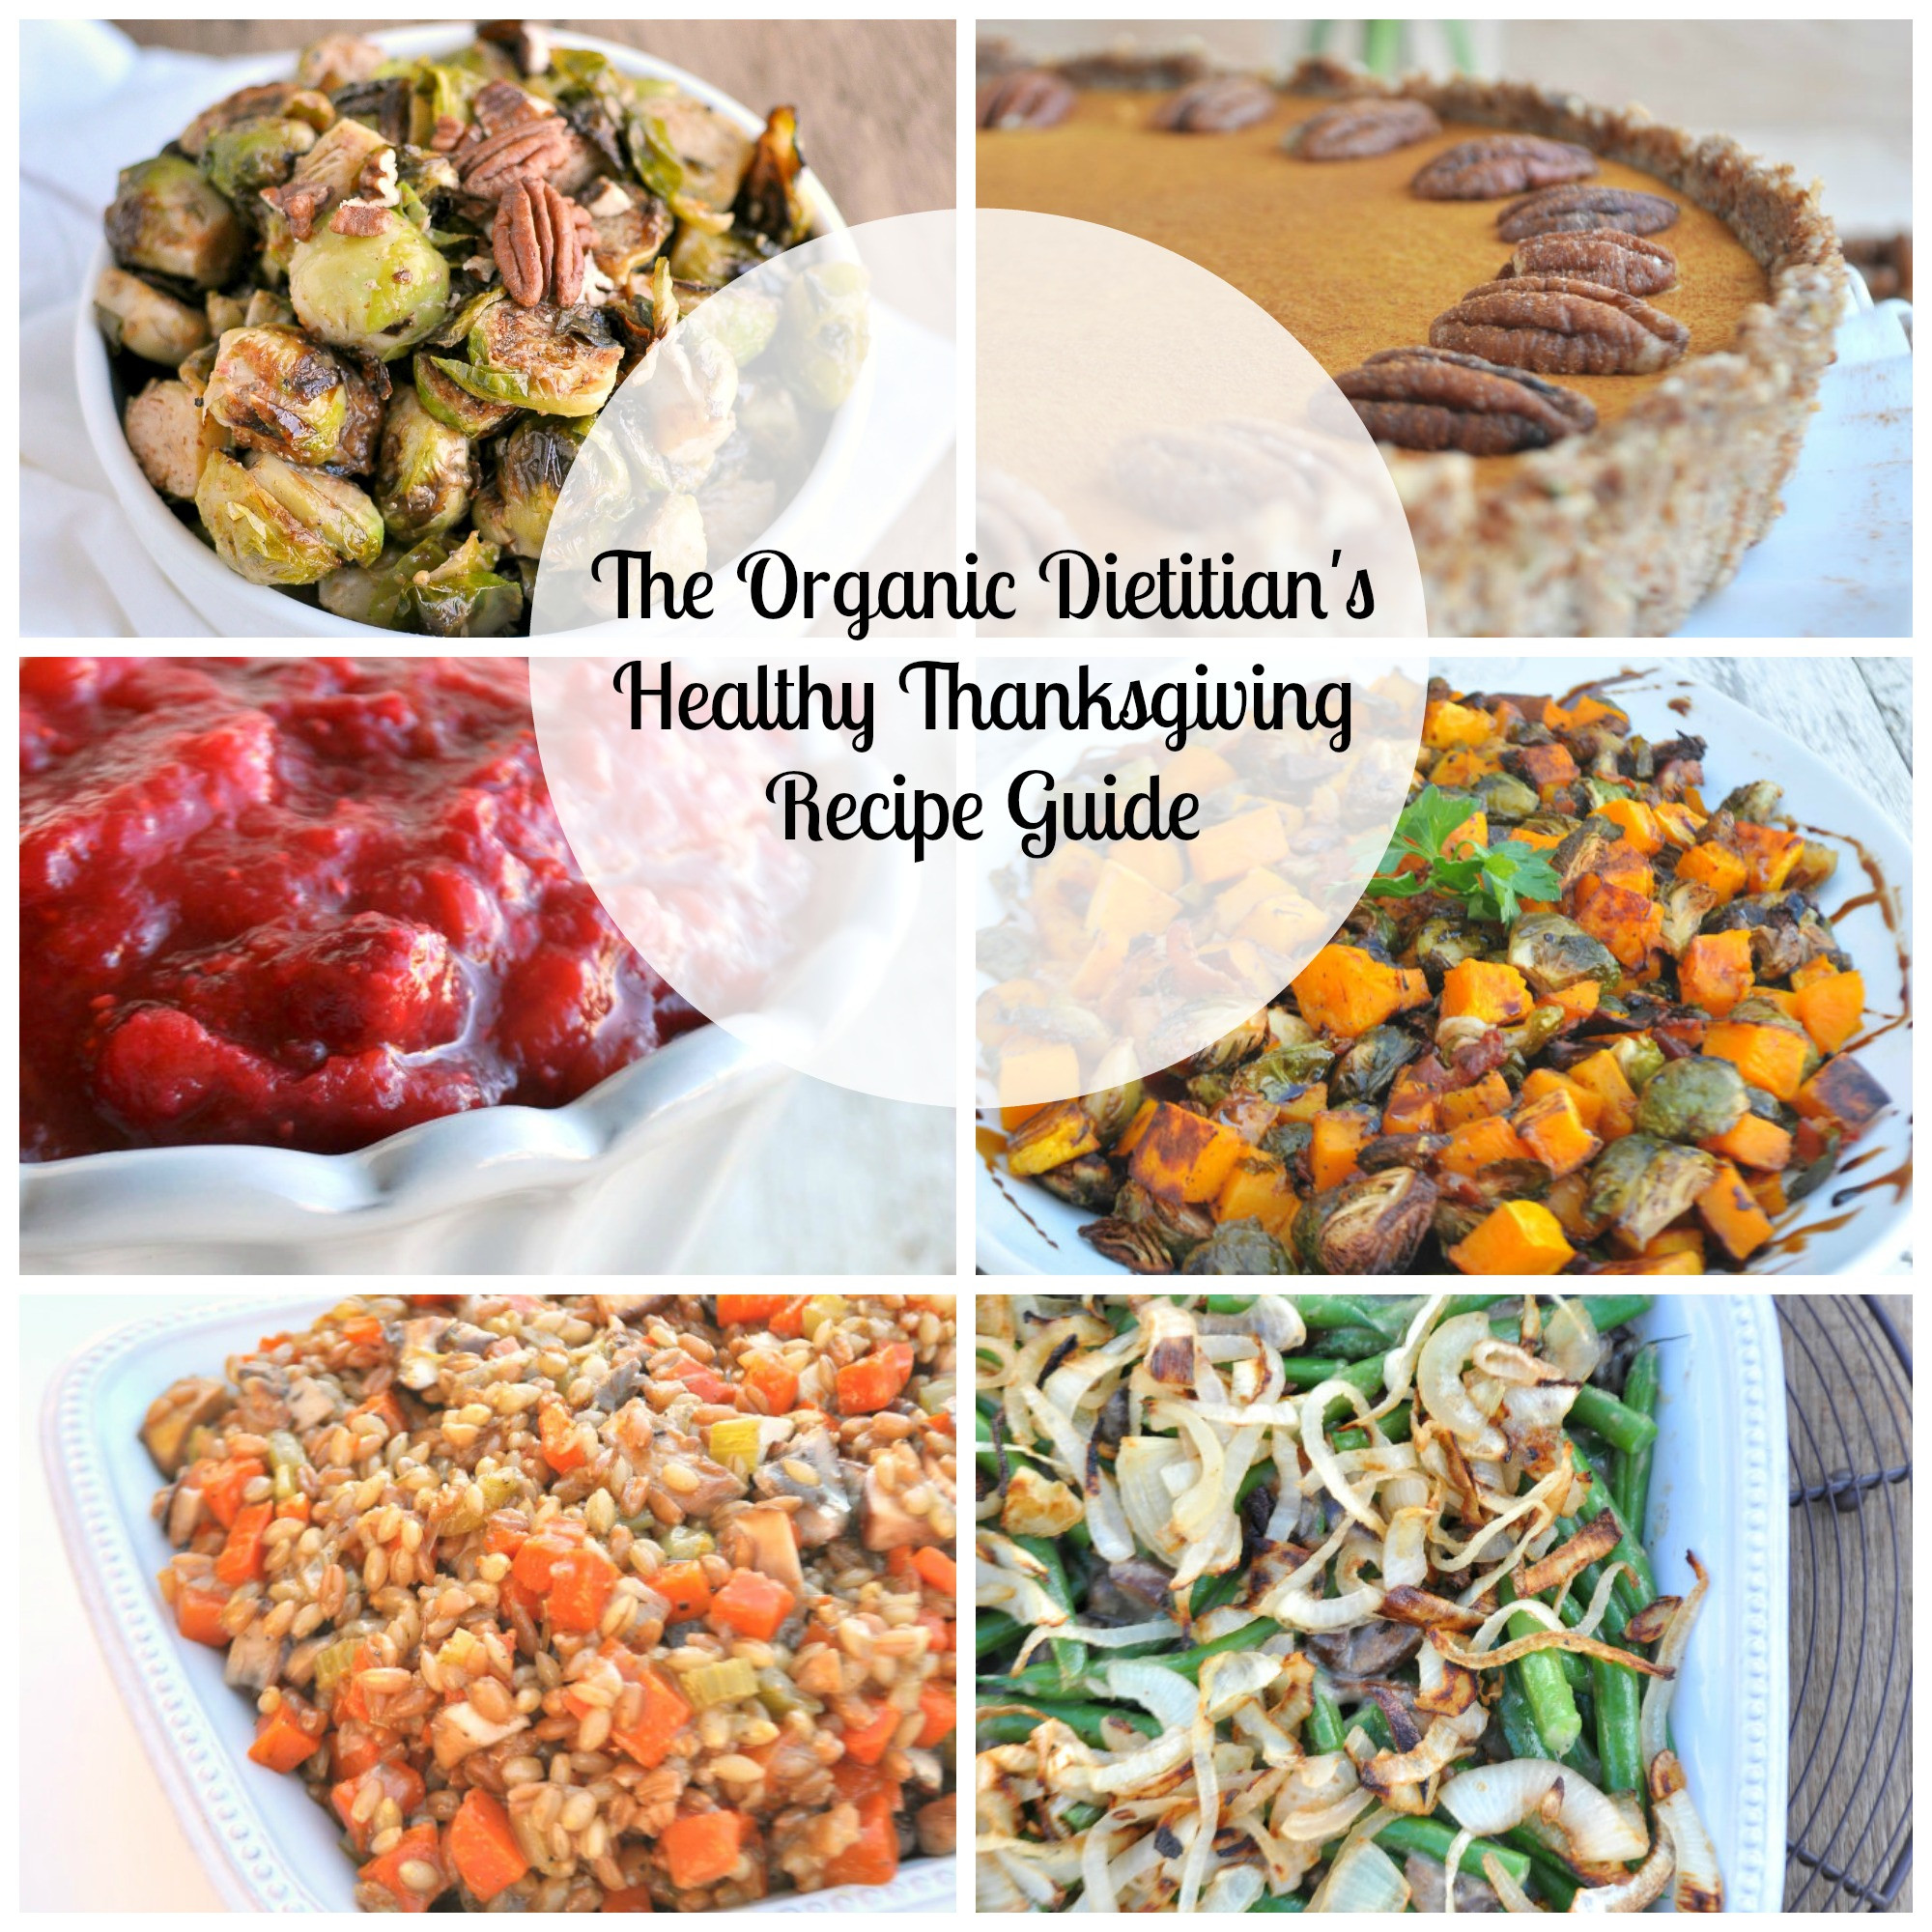 Healthy Thanksgiving Dishes  The Organic Dietitian s Healthy Thanksgiving Recipe Guide